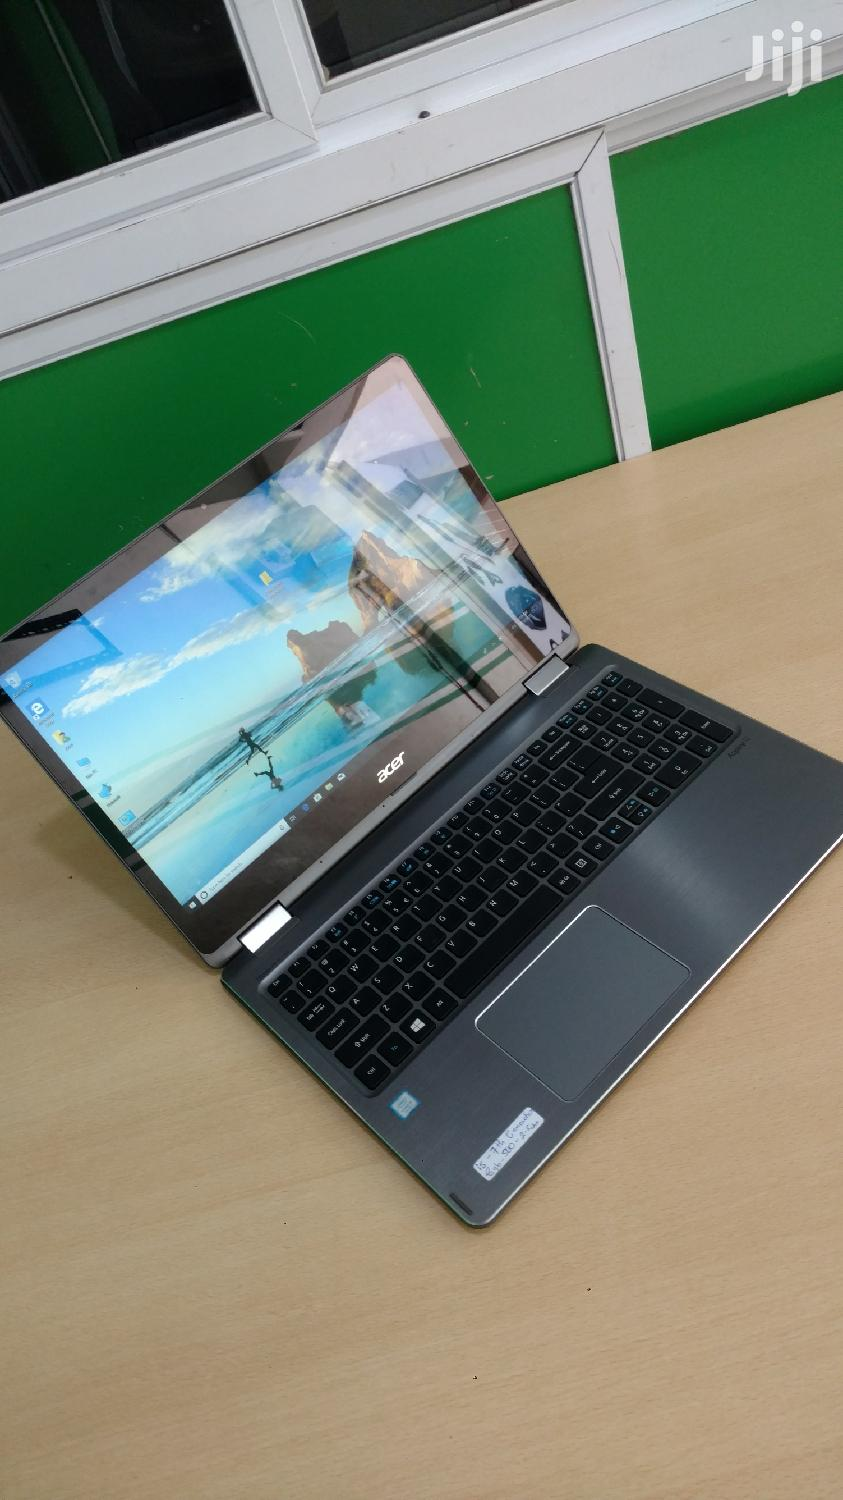 Archive Laptop Acer Aspire R 15 8gb Intel Core I5 Hdd 500gb In Achimota Laptops Computers Richard Jake Jiji Com Gh For Sale In Achimota Buy Laptops Computers From Richard